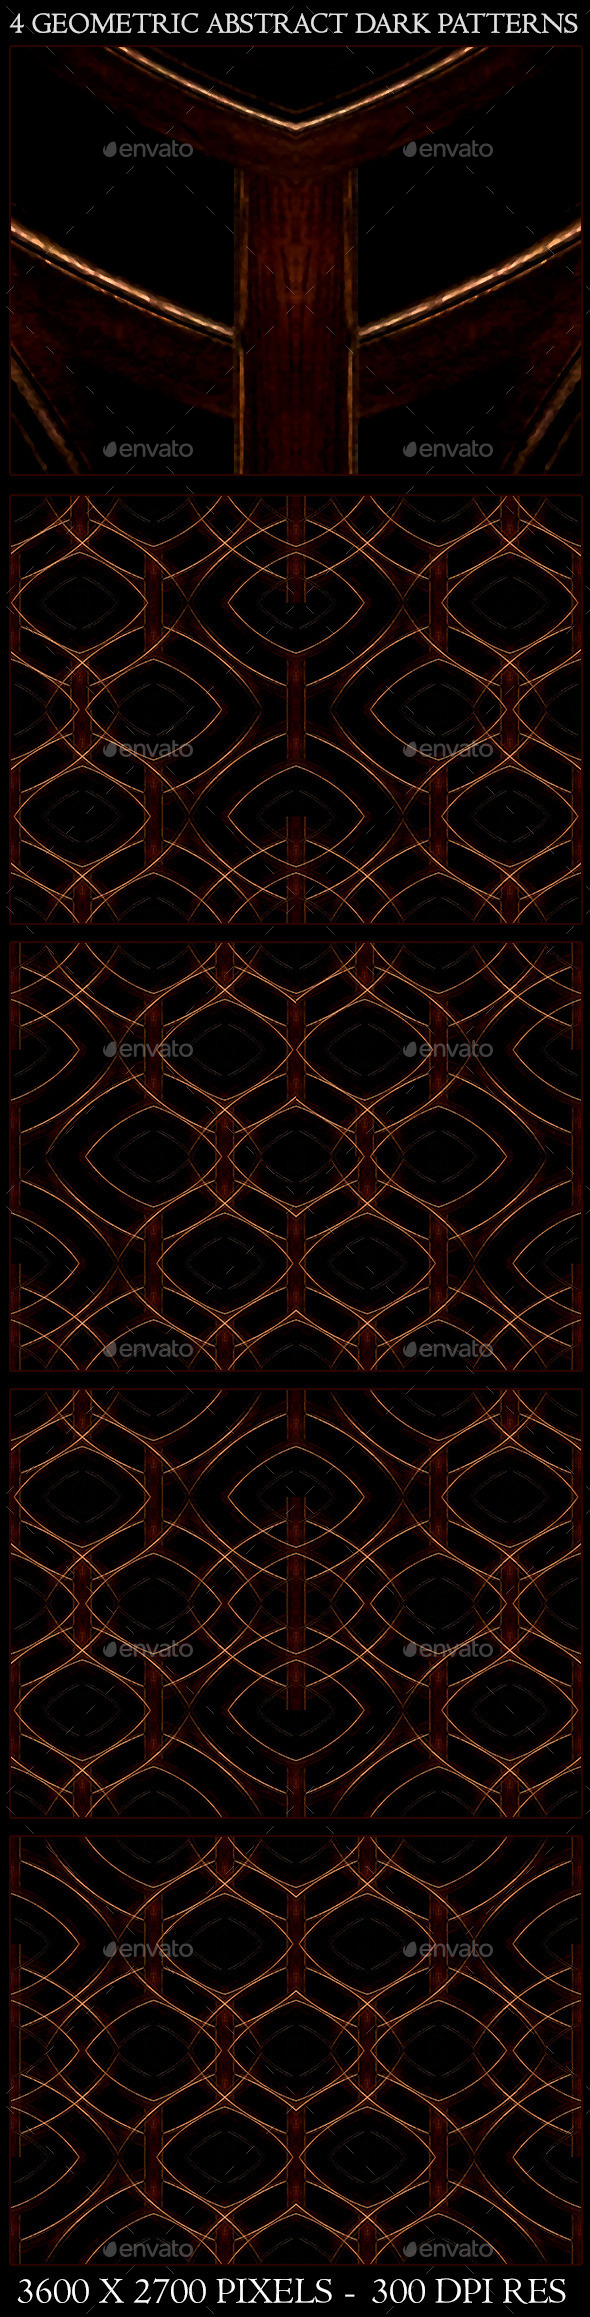 GraphicRiver 4 Geometric Abstract Dark Patterns 9593534